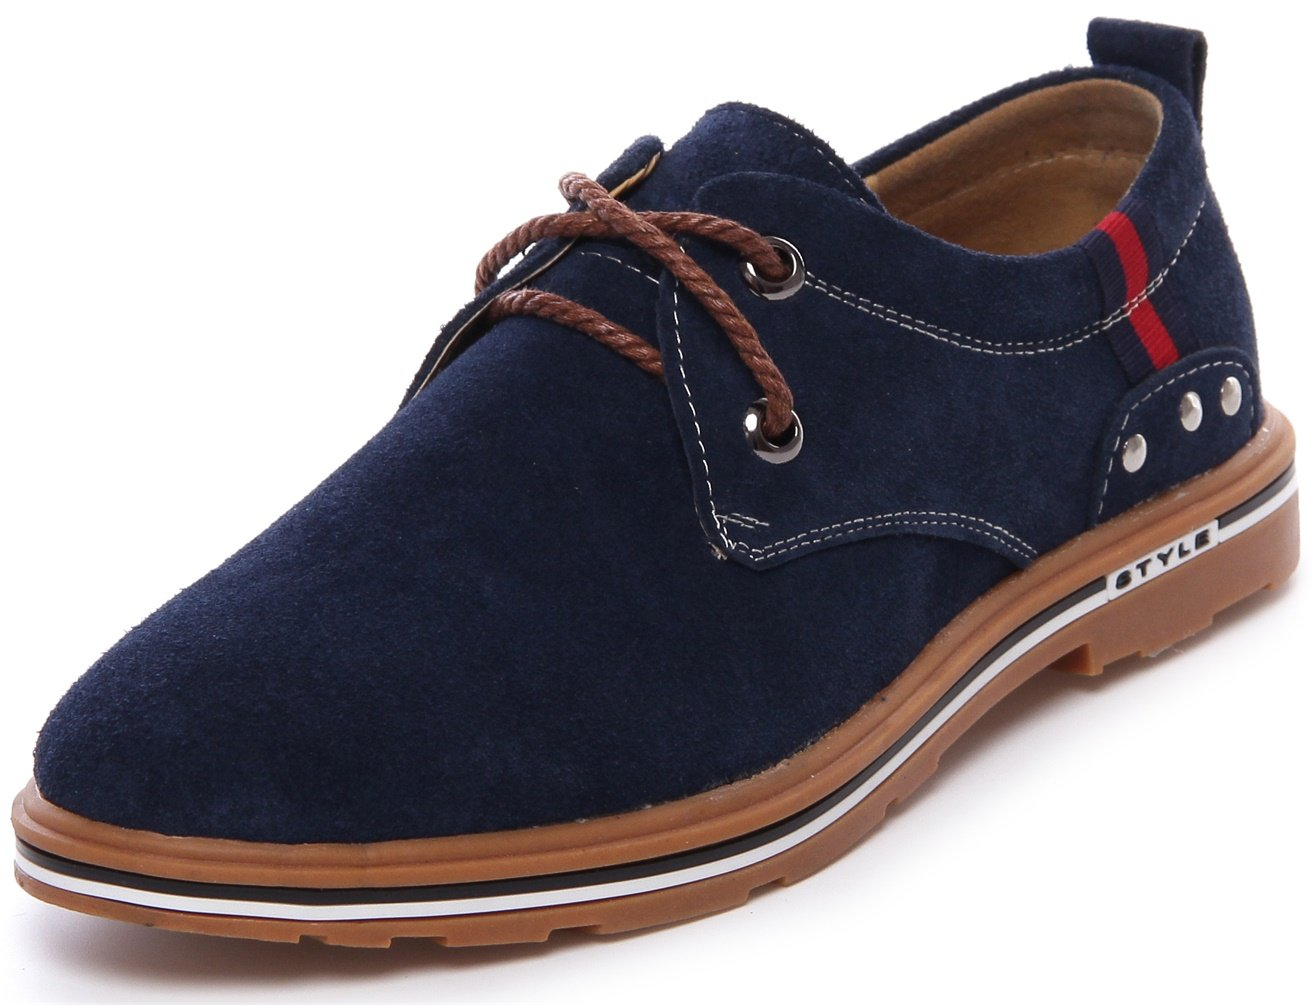 PPXID Men's Suede Leather Lace up Casual Oxford Shoes-Blue 6 US Size